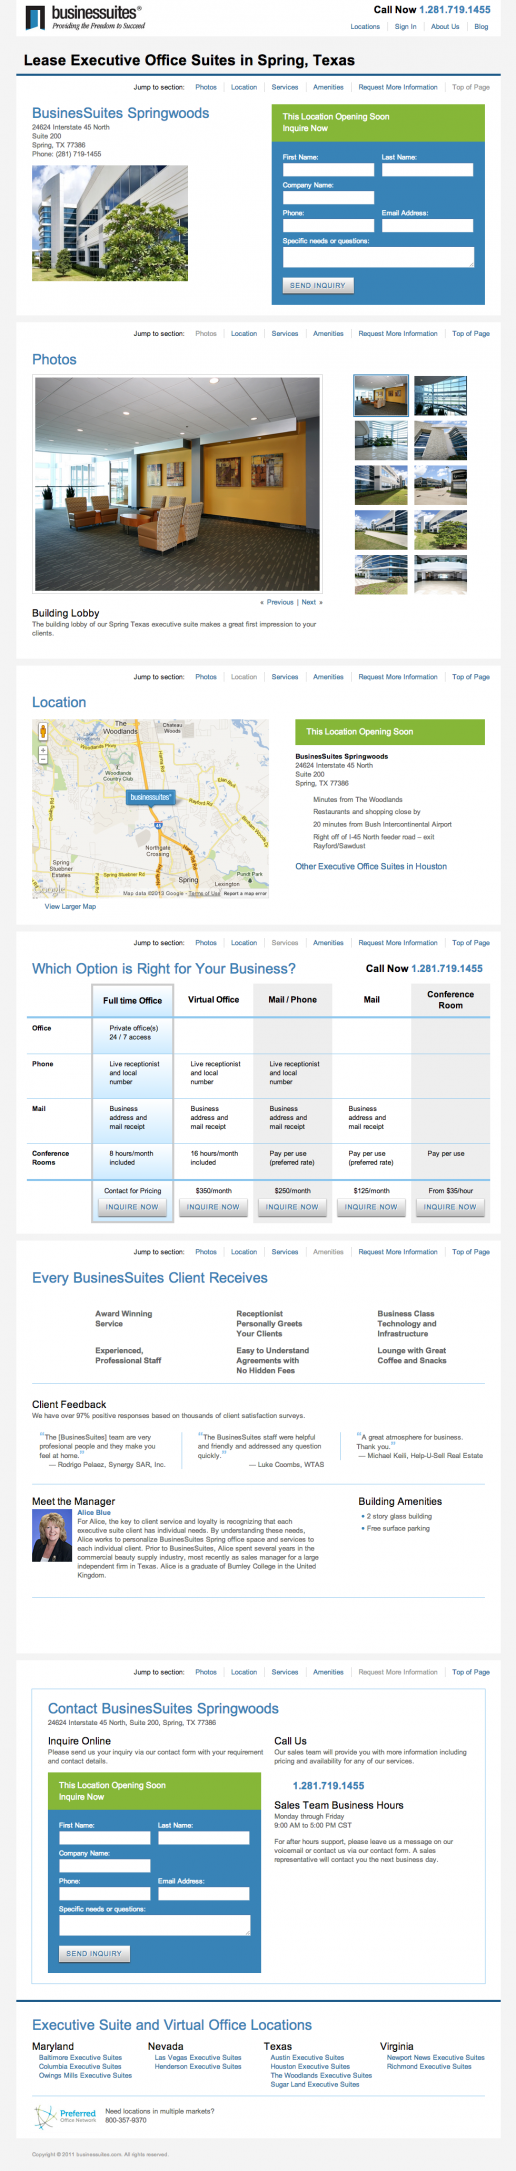 BusinesSuites Property Available Soon Page – example 1